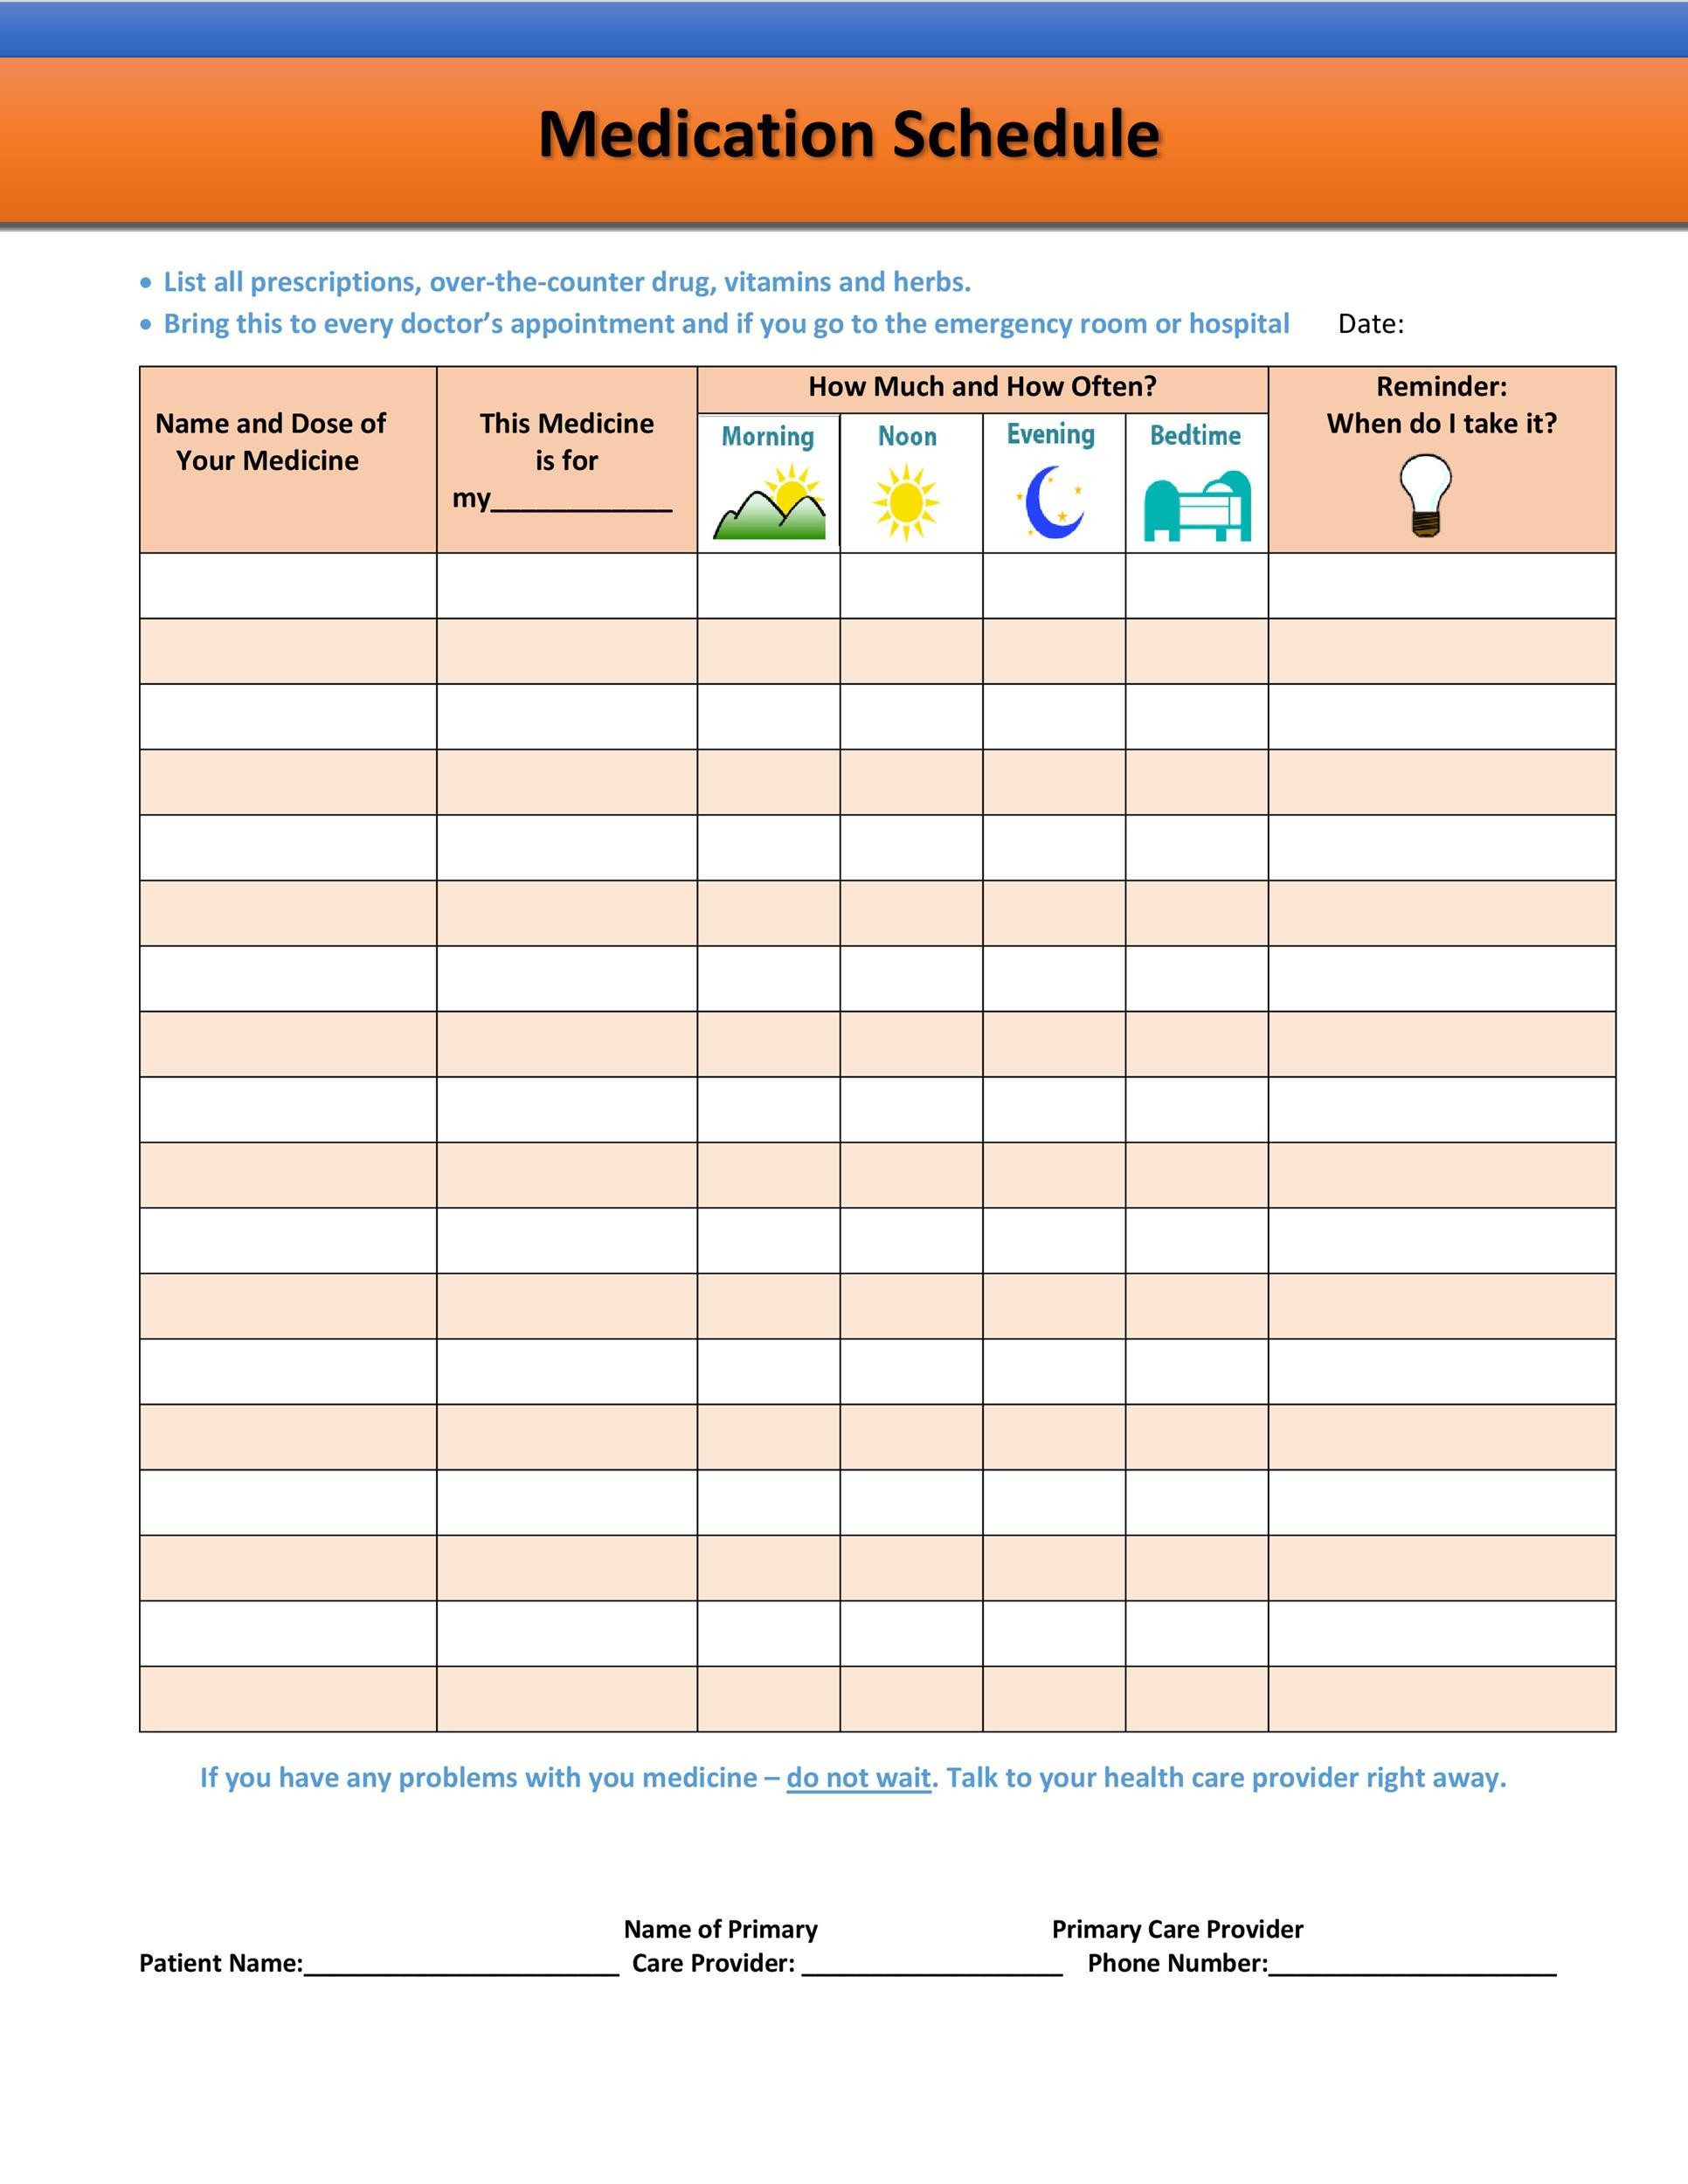 Free medication schedule template 40